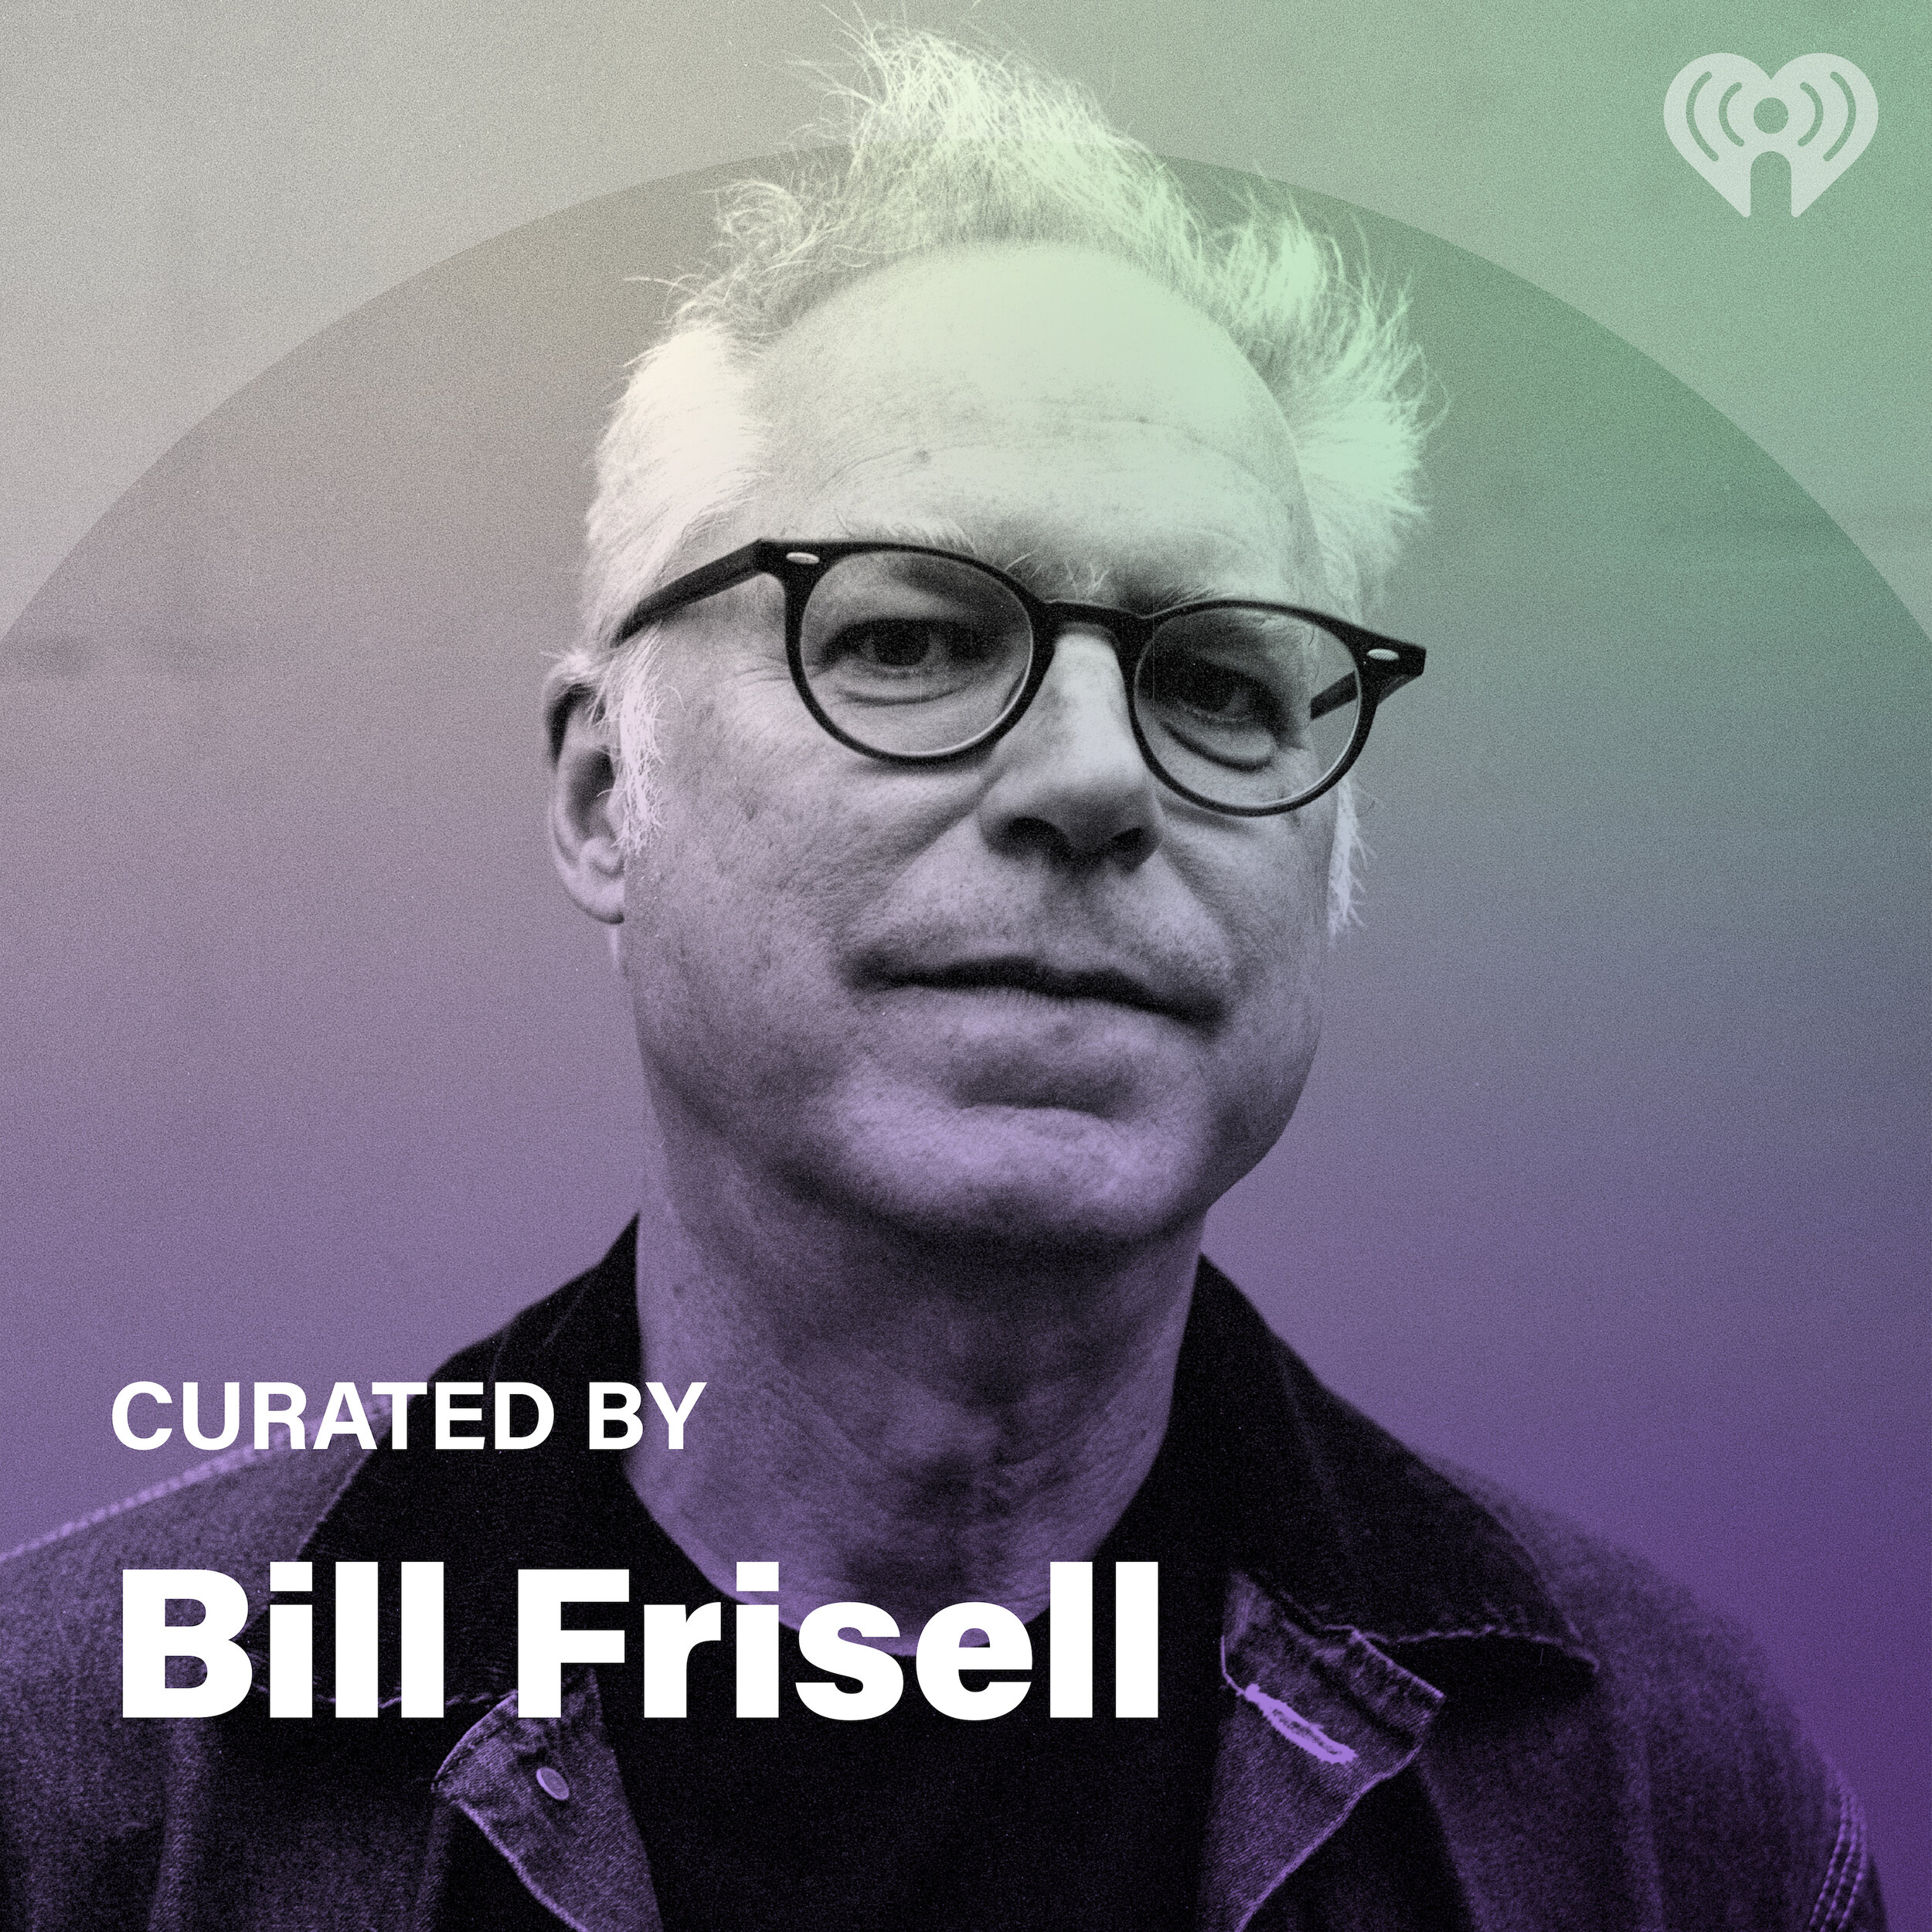 Curated By: Bill Frisell